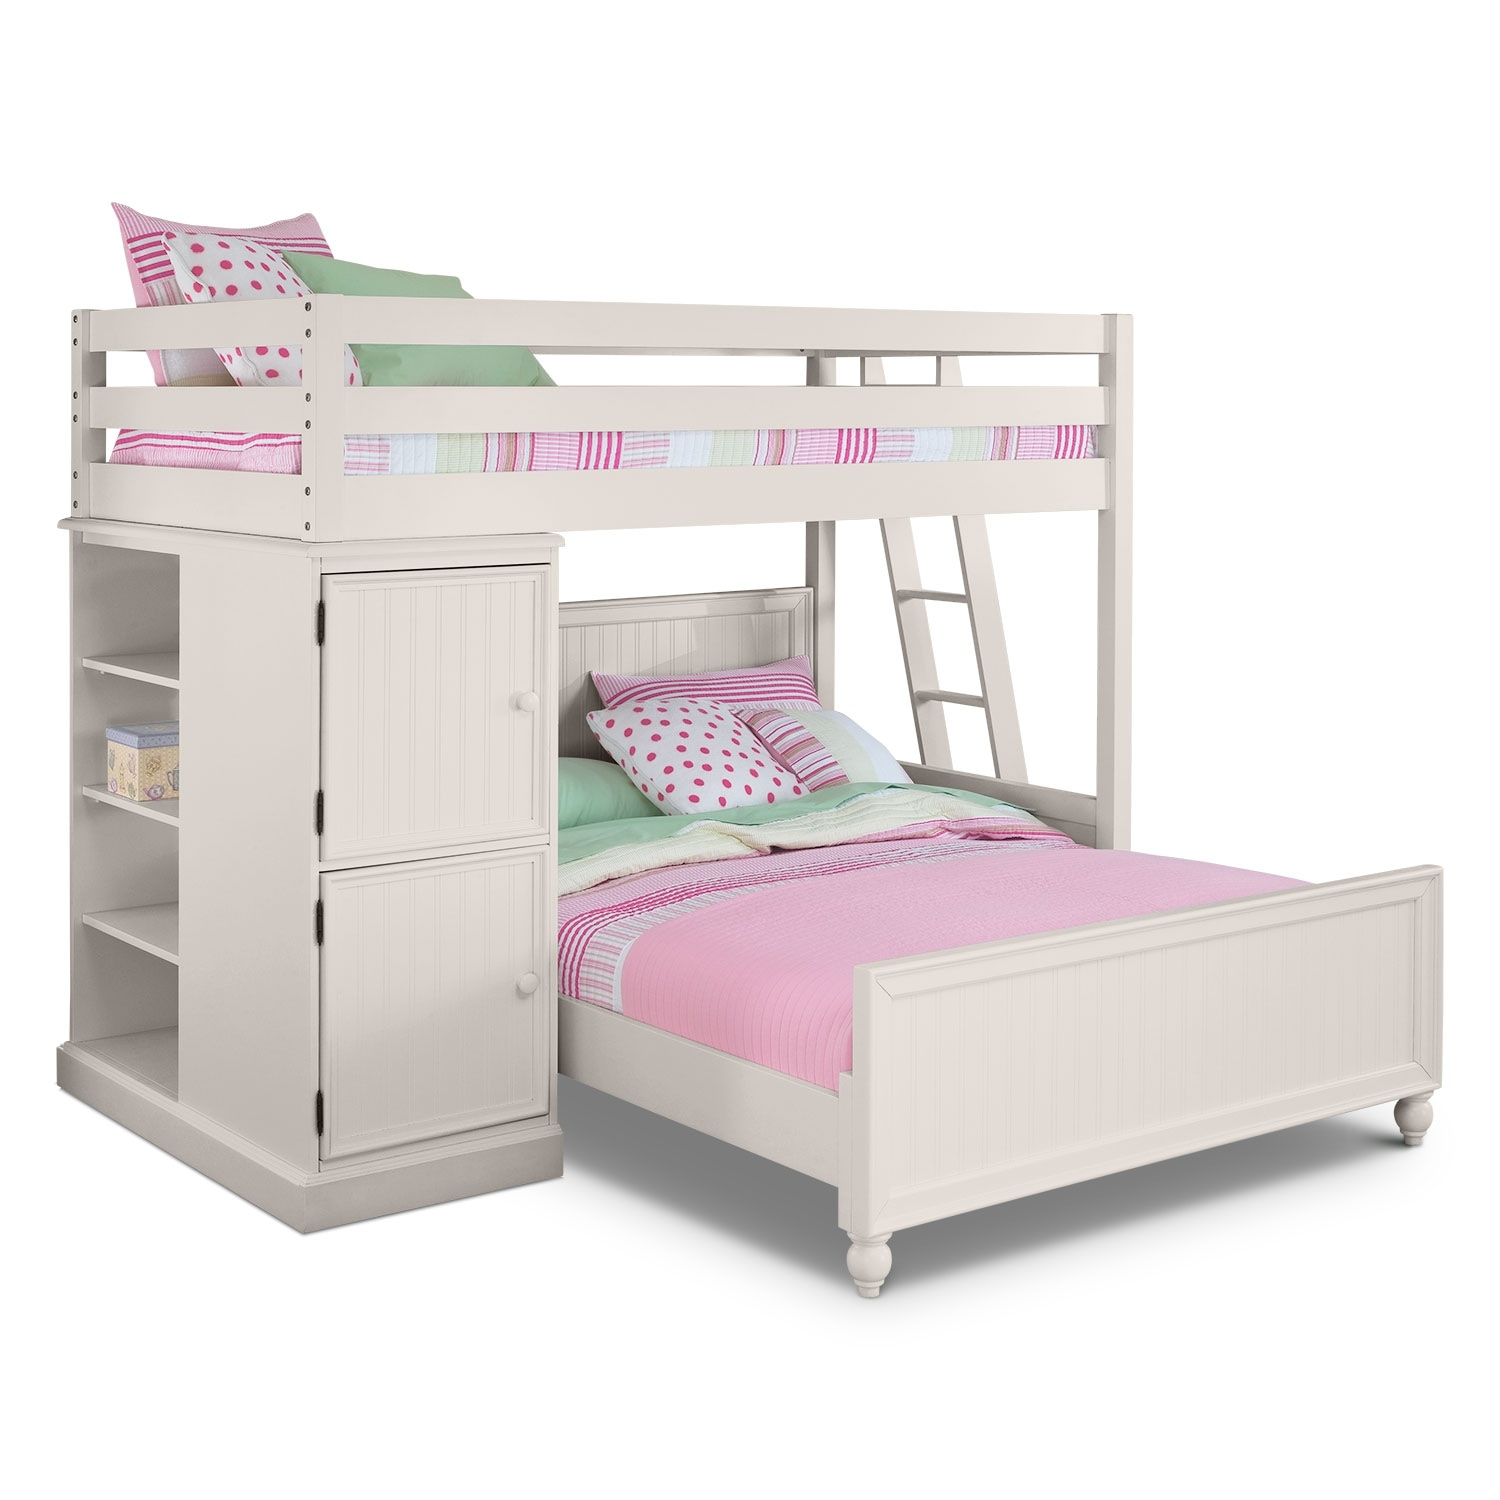 Delicieux Kids Furniture   Colorworks Loft Bed With Full Bed   White